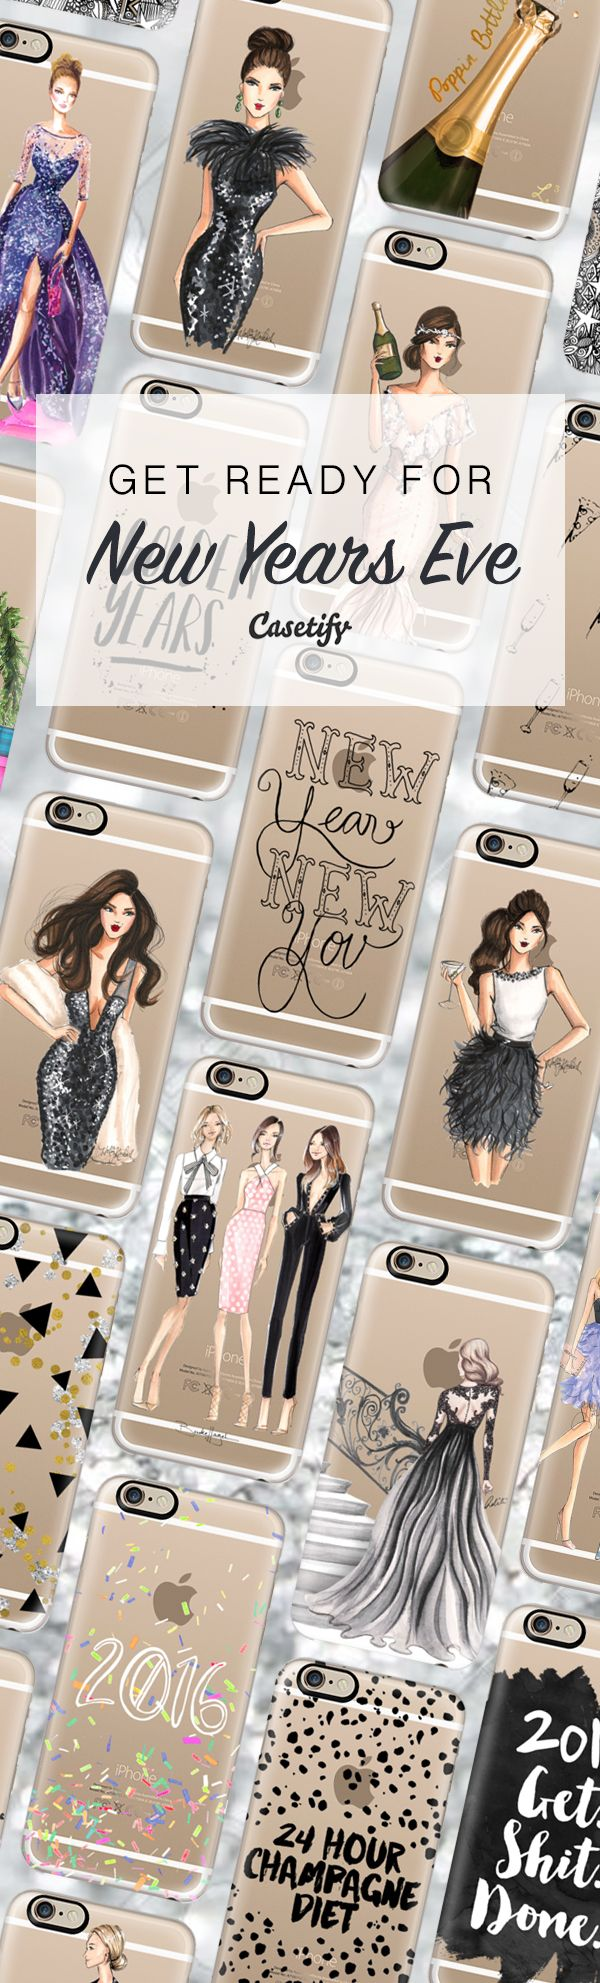 Glam up your #nye party look. Shop these 2016 ready designs here:  https://www.casetify.com/artworks/MDpmjEy7UM